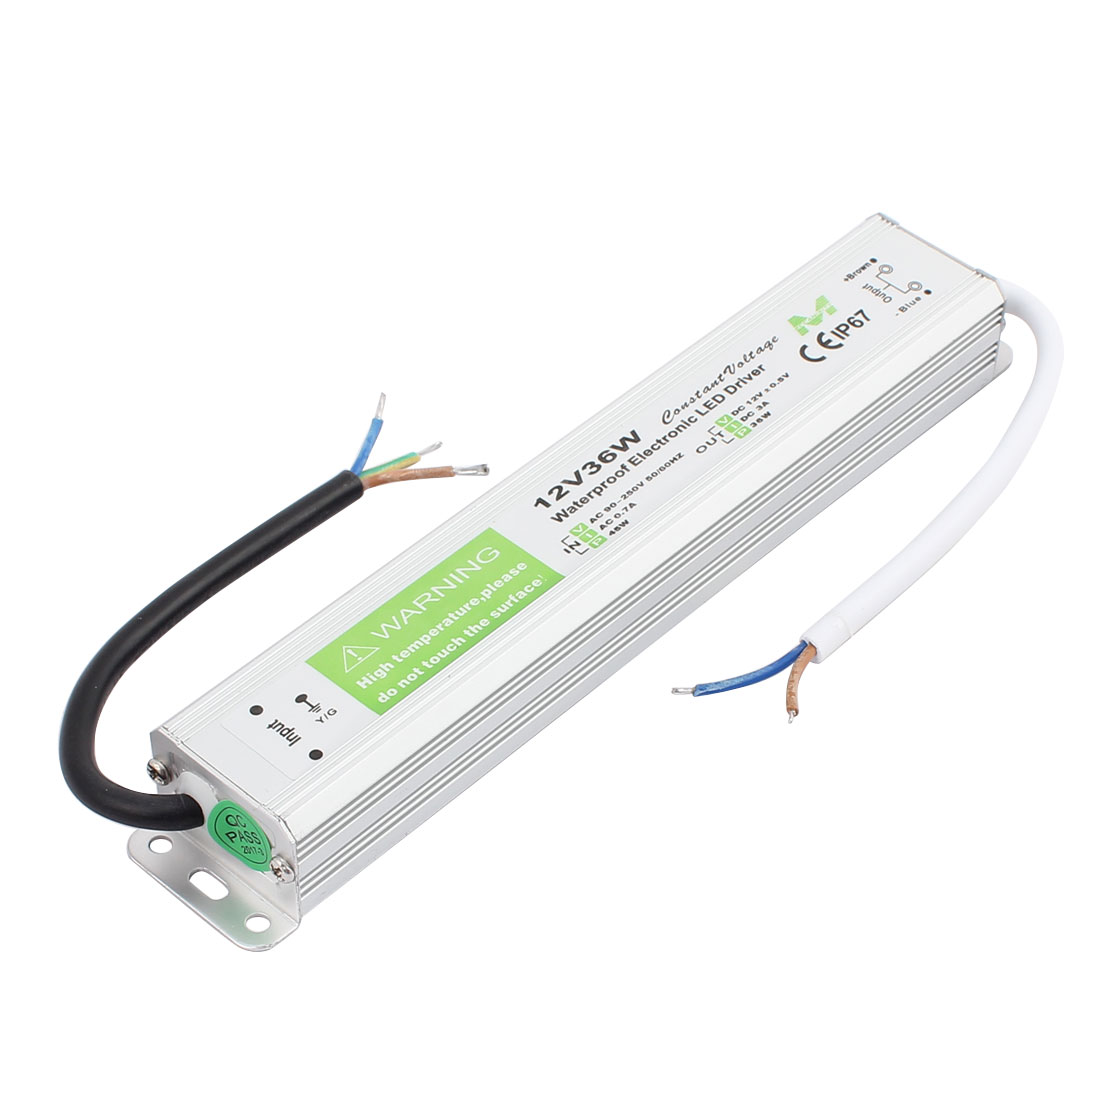 AC 90-250V to DC12V 36 Watt Transformer IP67 Waterproof LED Driver Power Supply